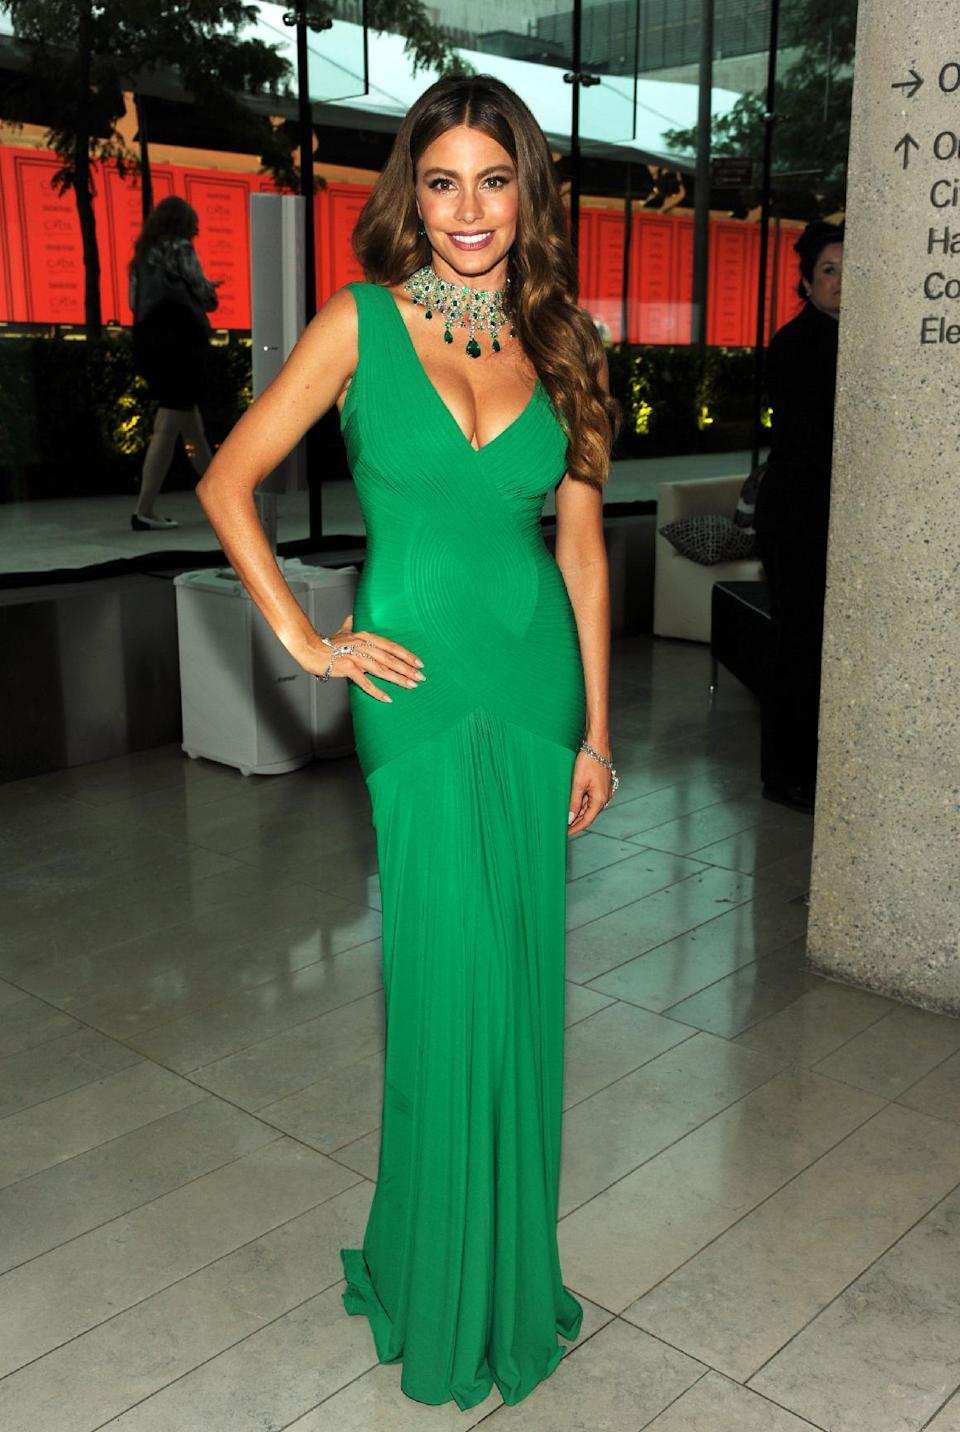 Actress Sofía Vergara attends the 2013 CFDA Fashion Awards at Alice Tully Hall on Monday, June 3, 2013 in New York. (Photo by Evan Agostini/Invision/AP)